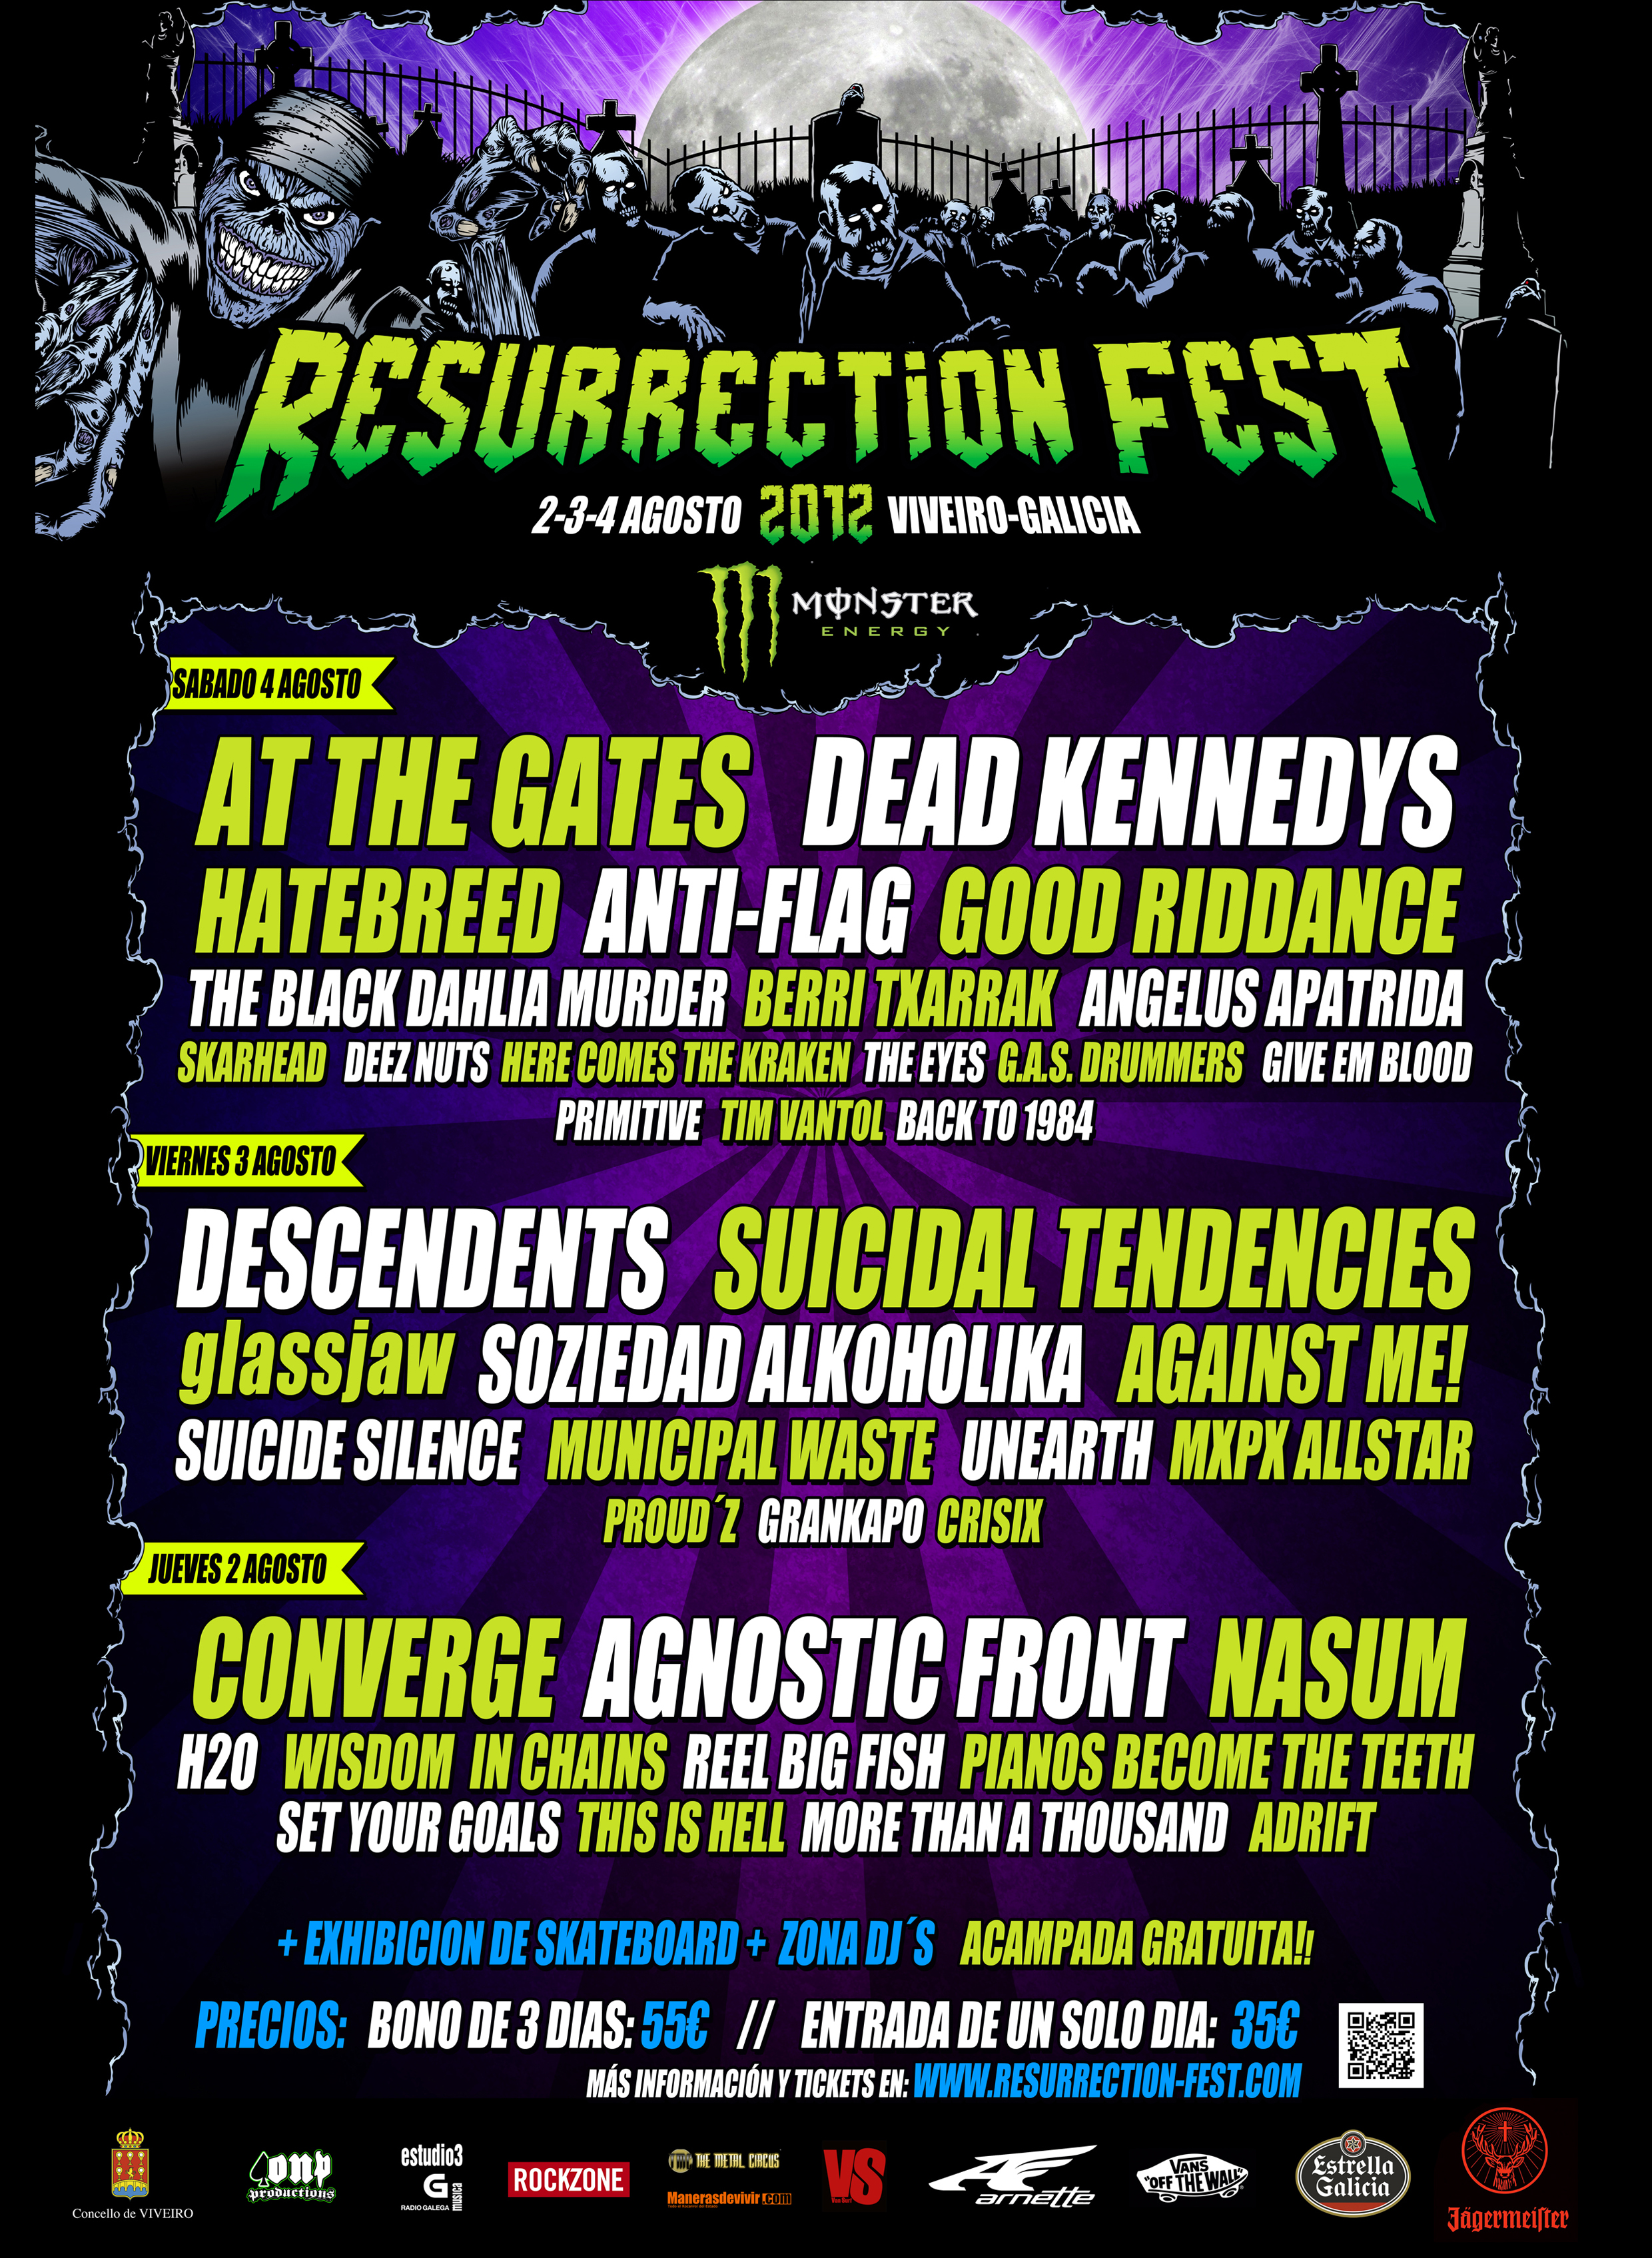 Resurrection Fest 2012 - Cartel